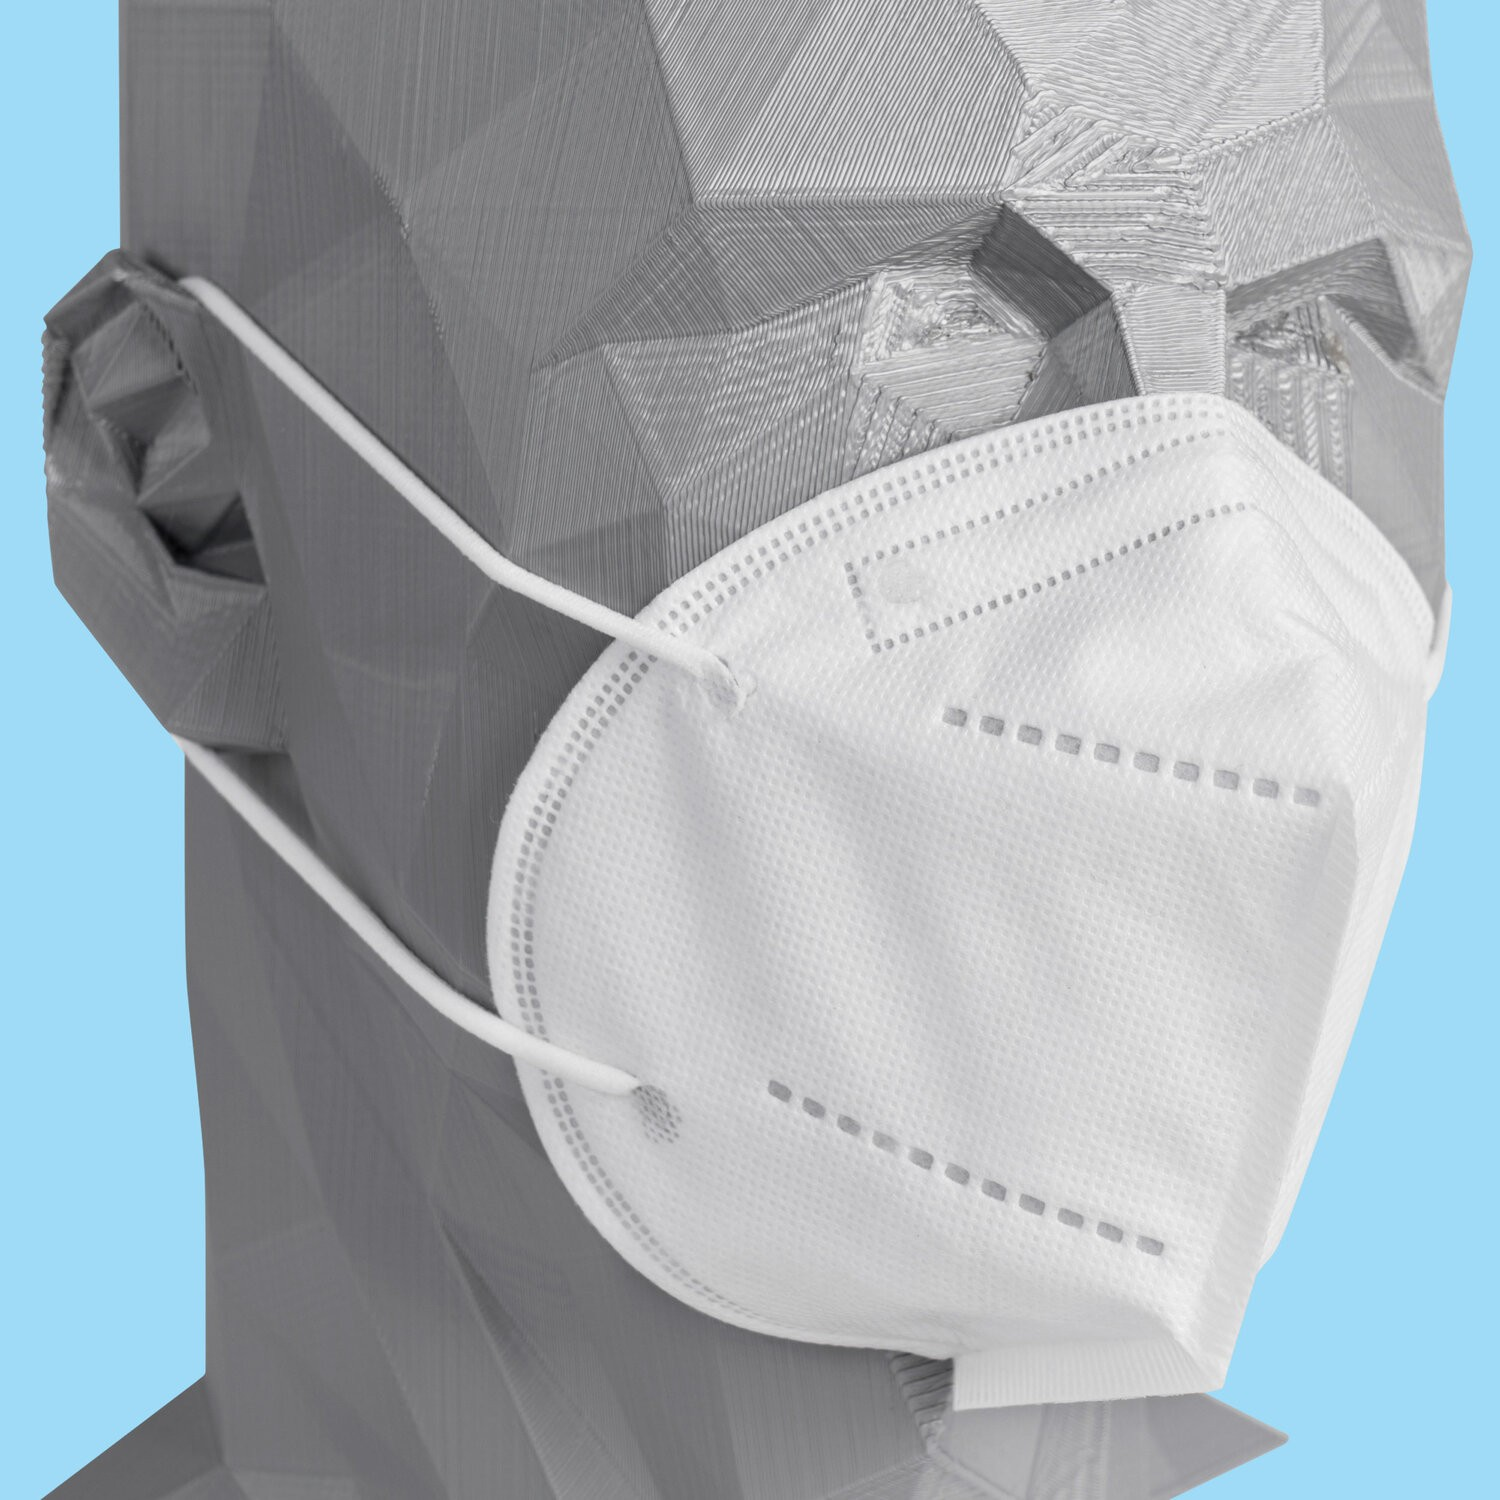 Disposable KN95 Face Mask China Face Mask Supplier Manufacturers, Disposable KN95 Face Mask China Face Mask Supplier Factory, Supply Disposable KN95 Face Mask China Face Mask Supplier